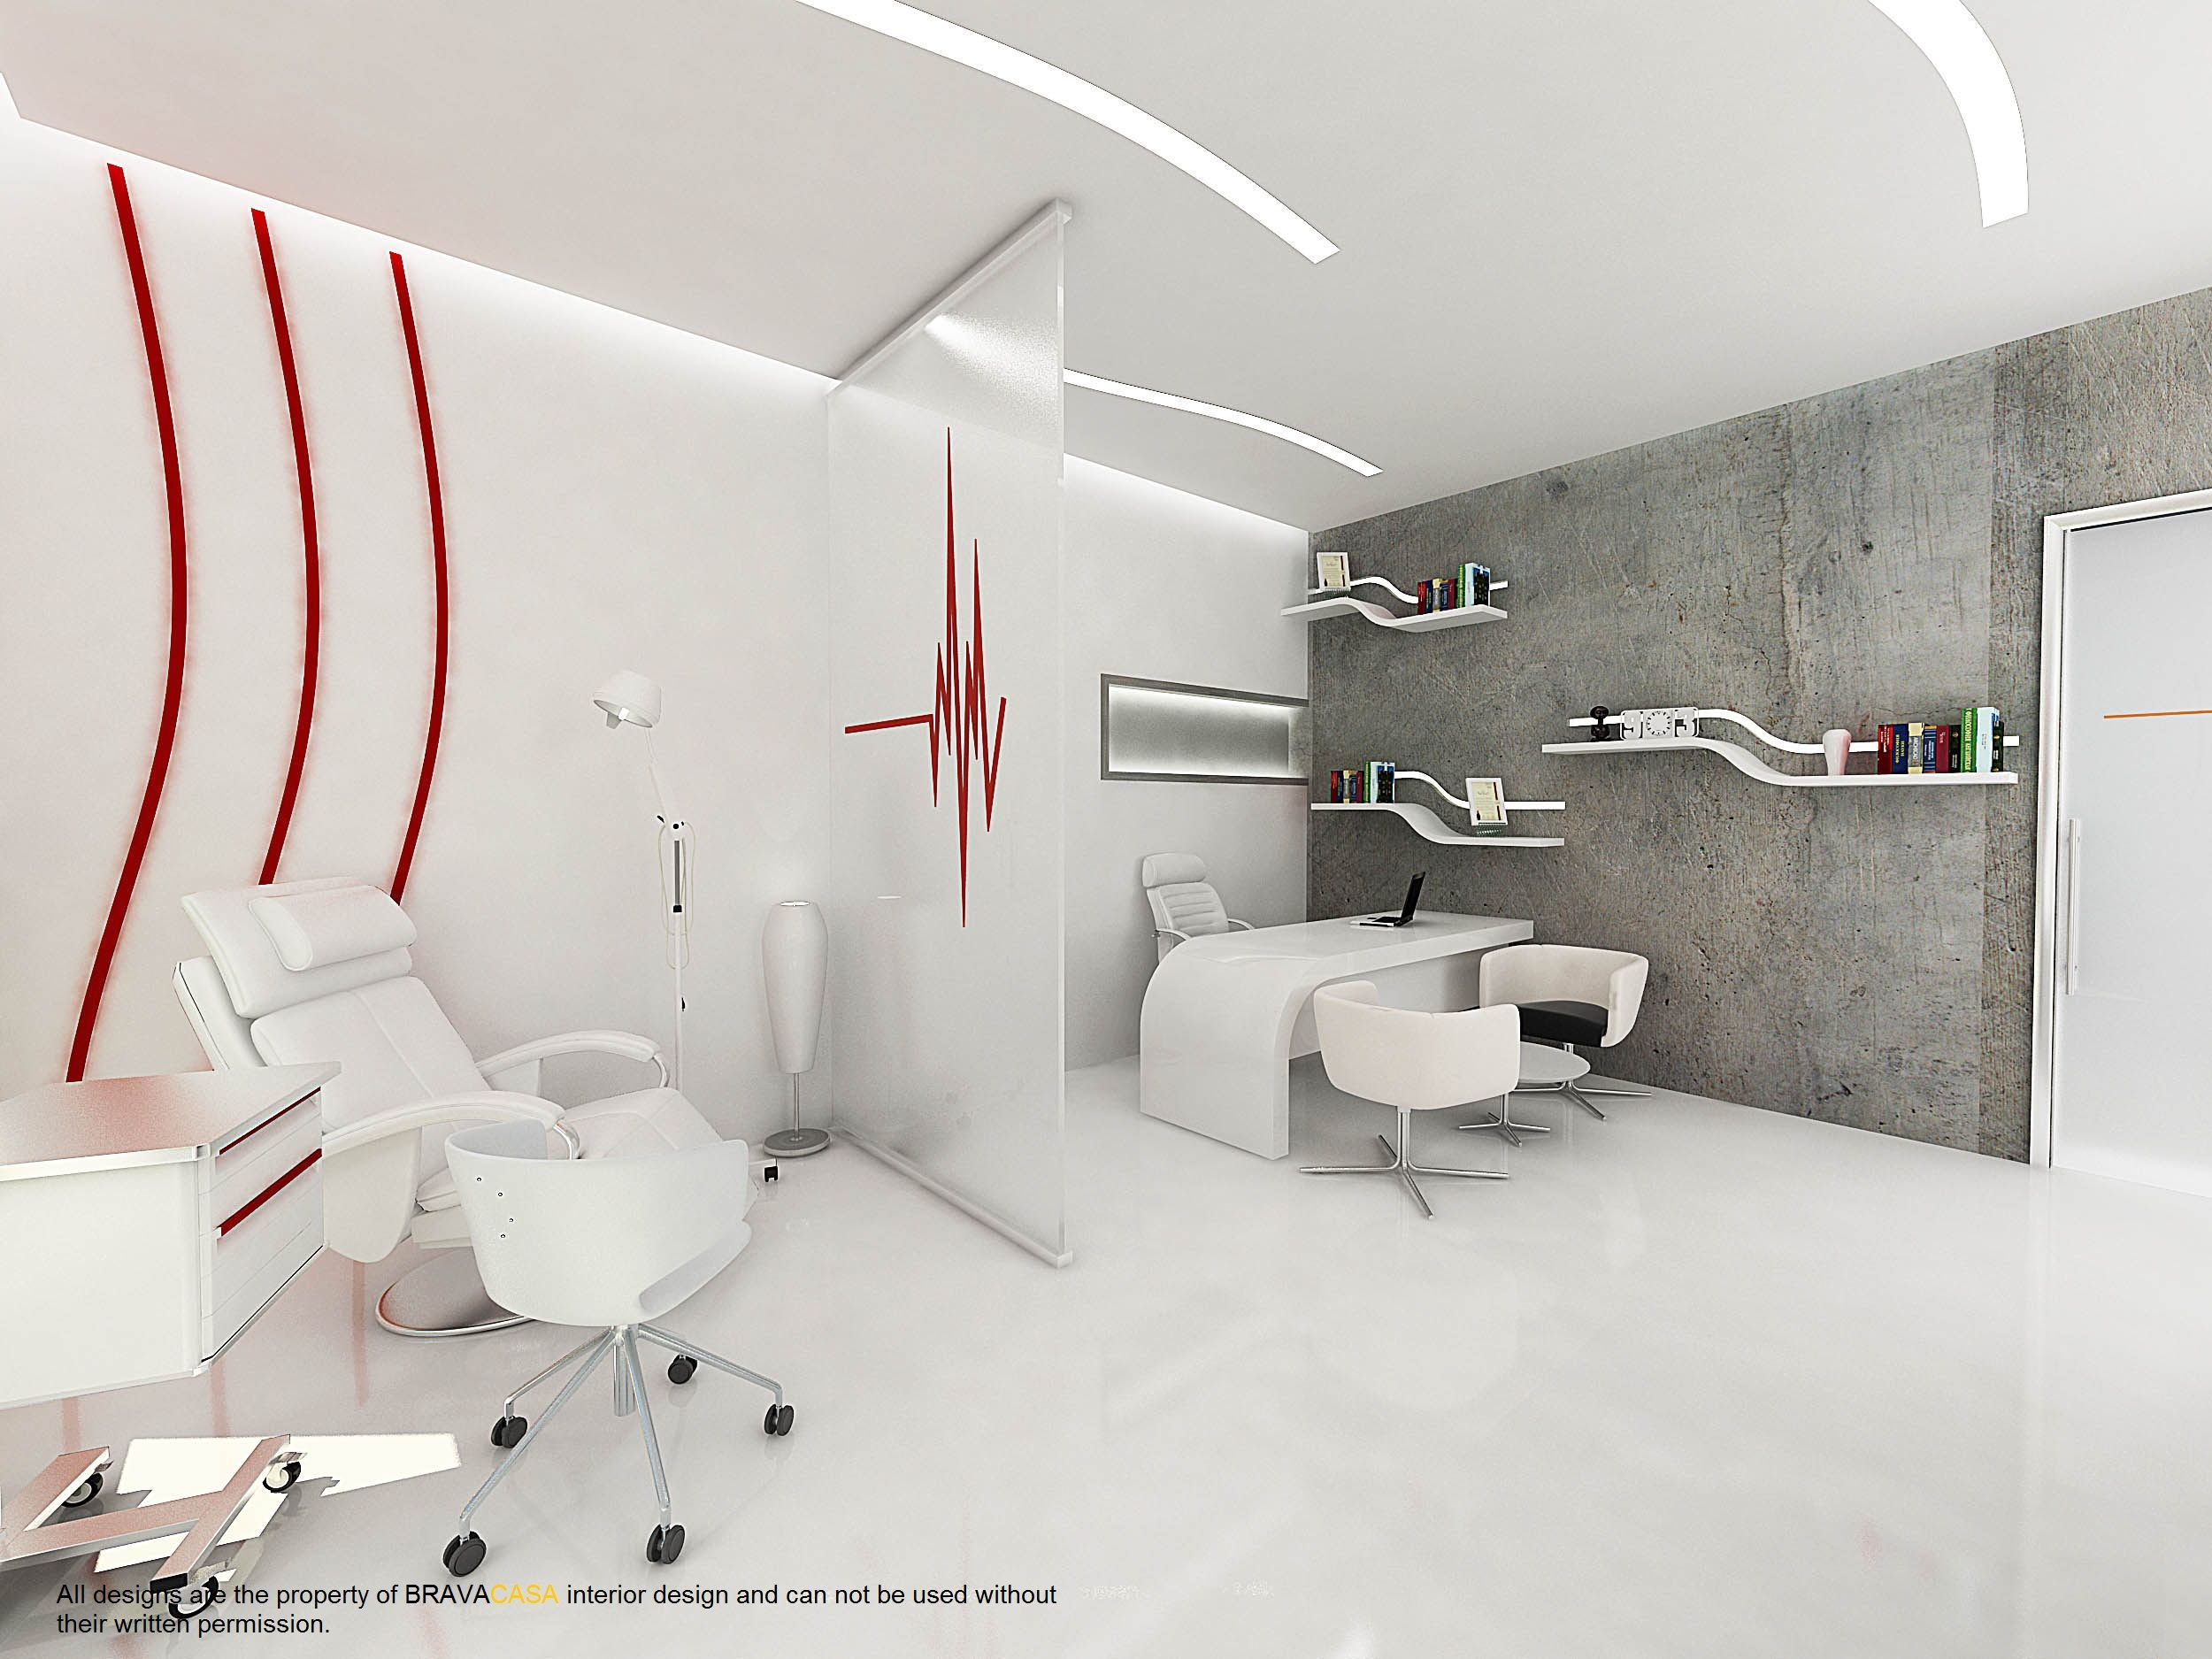 Embryocare Clinic Displaying New Direction In Healthcare Design